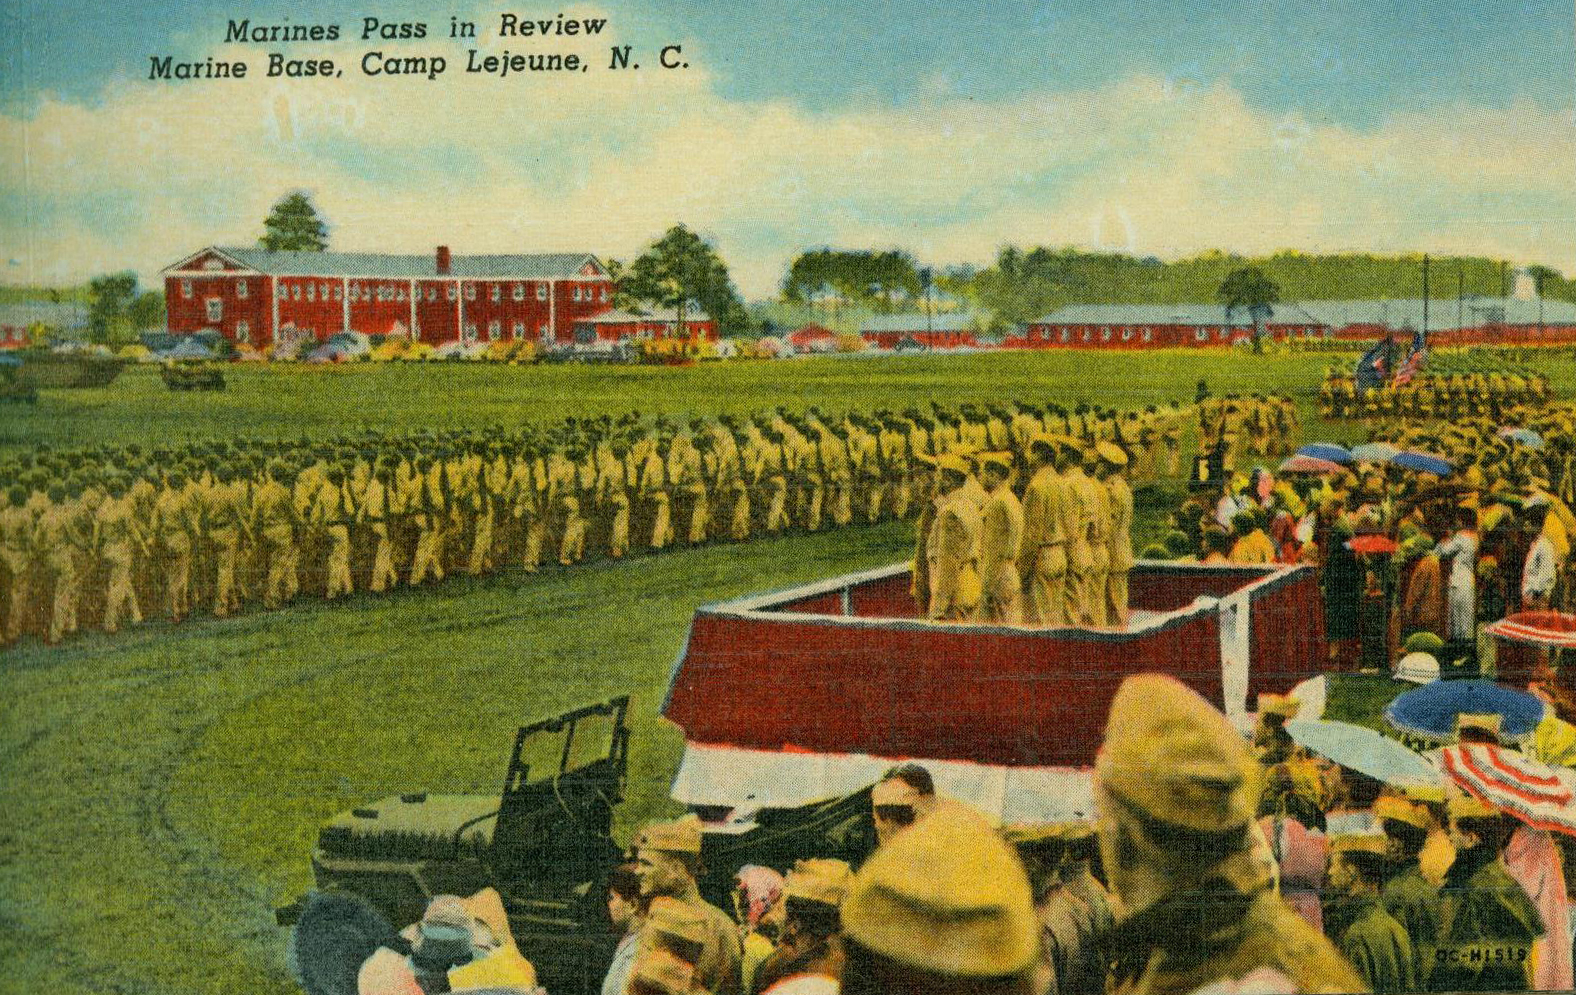 W.P.T. Hill Field Parade Grounds